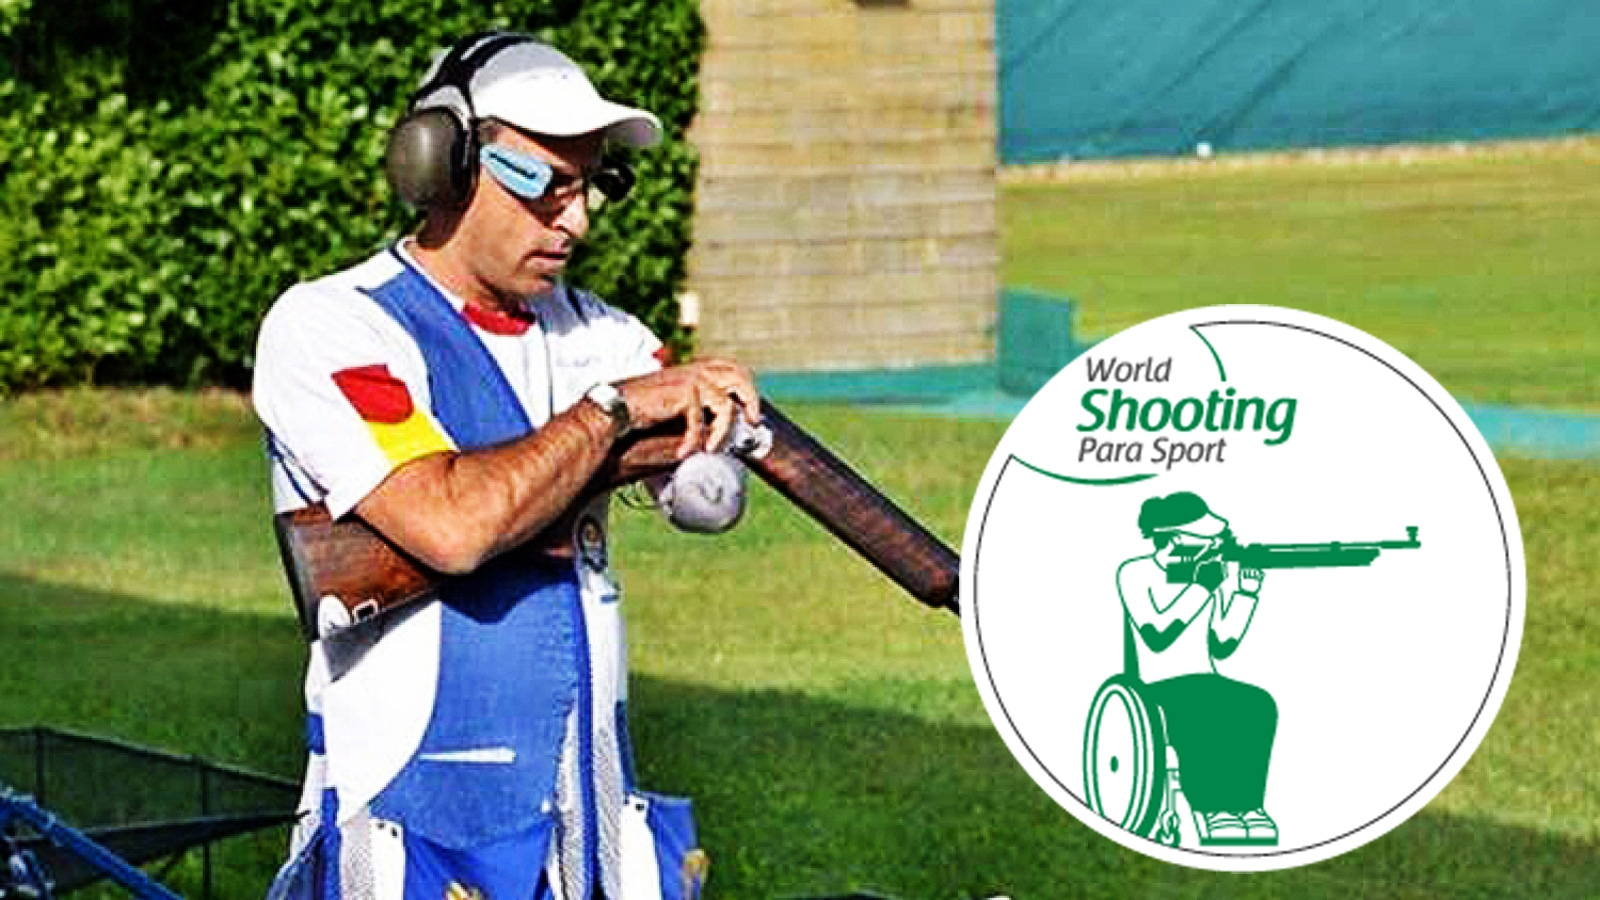 World Shooting Para Sport World Cup.